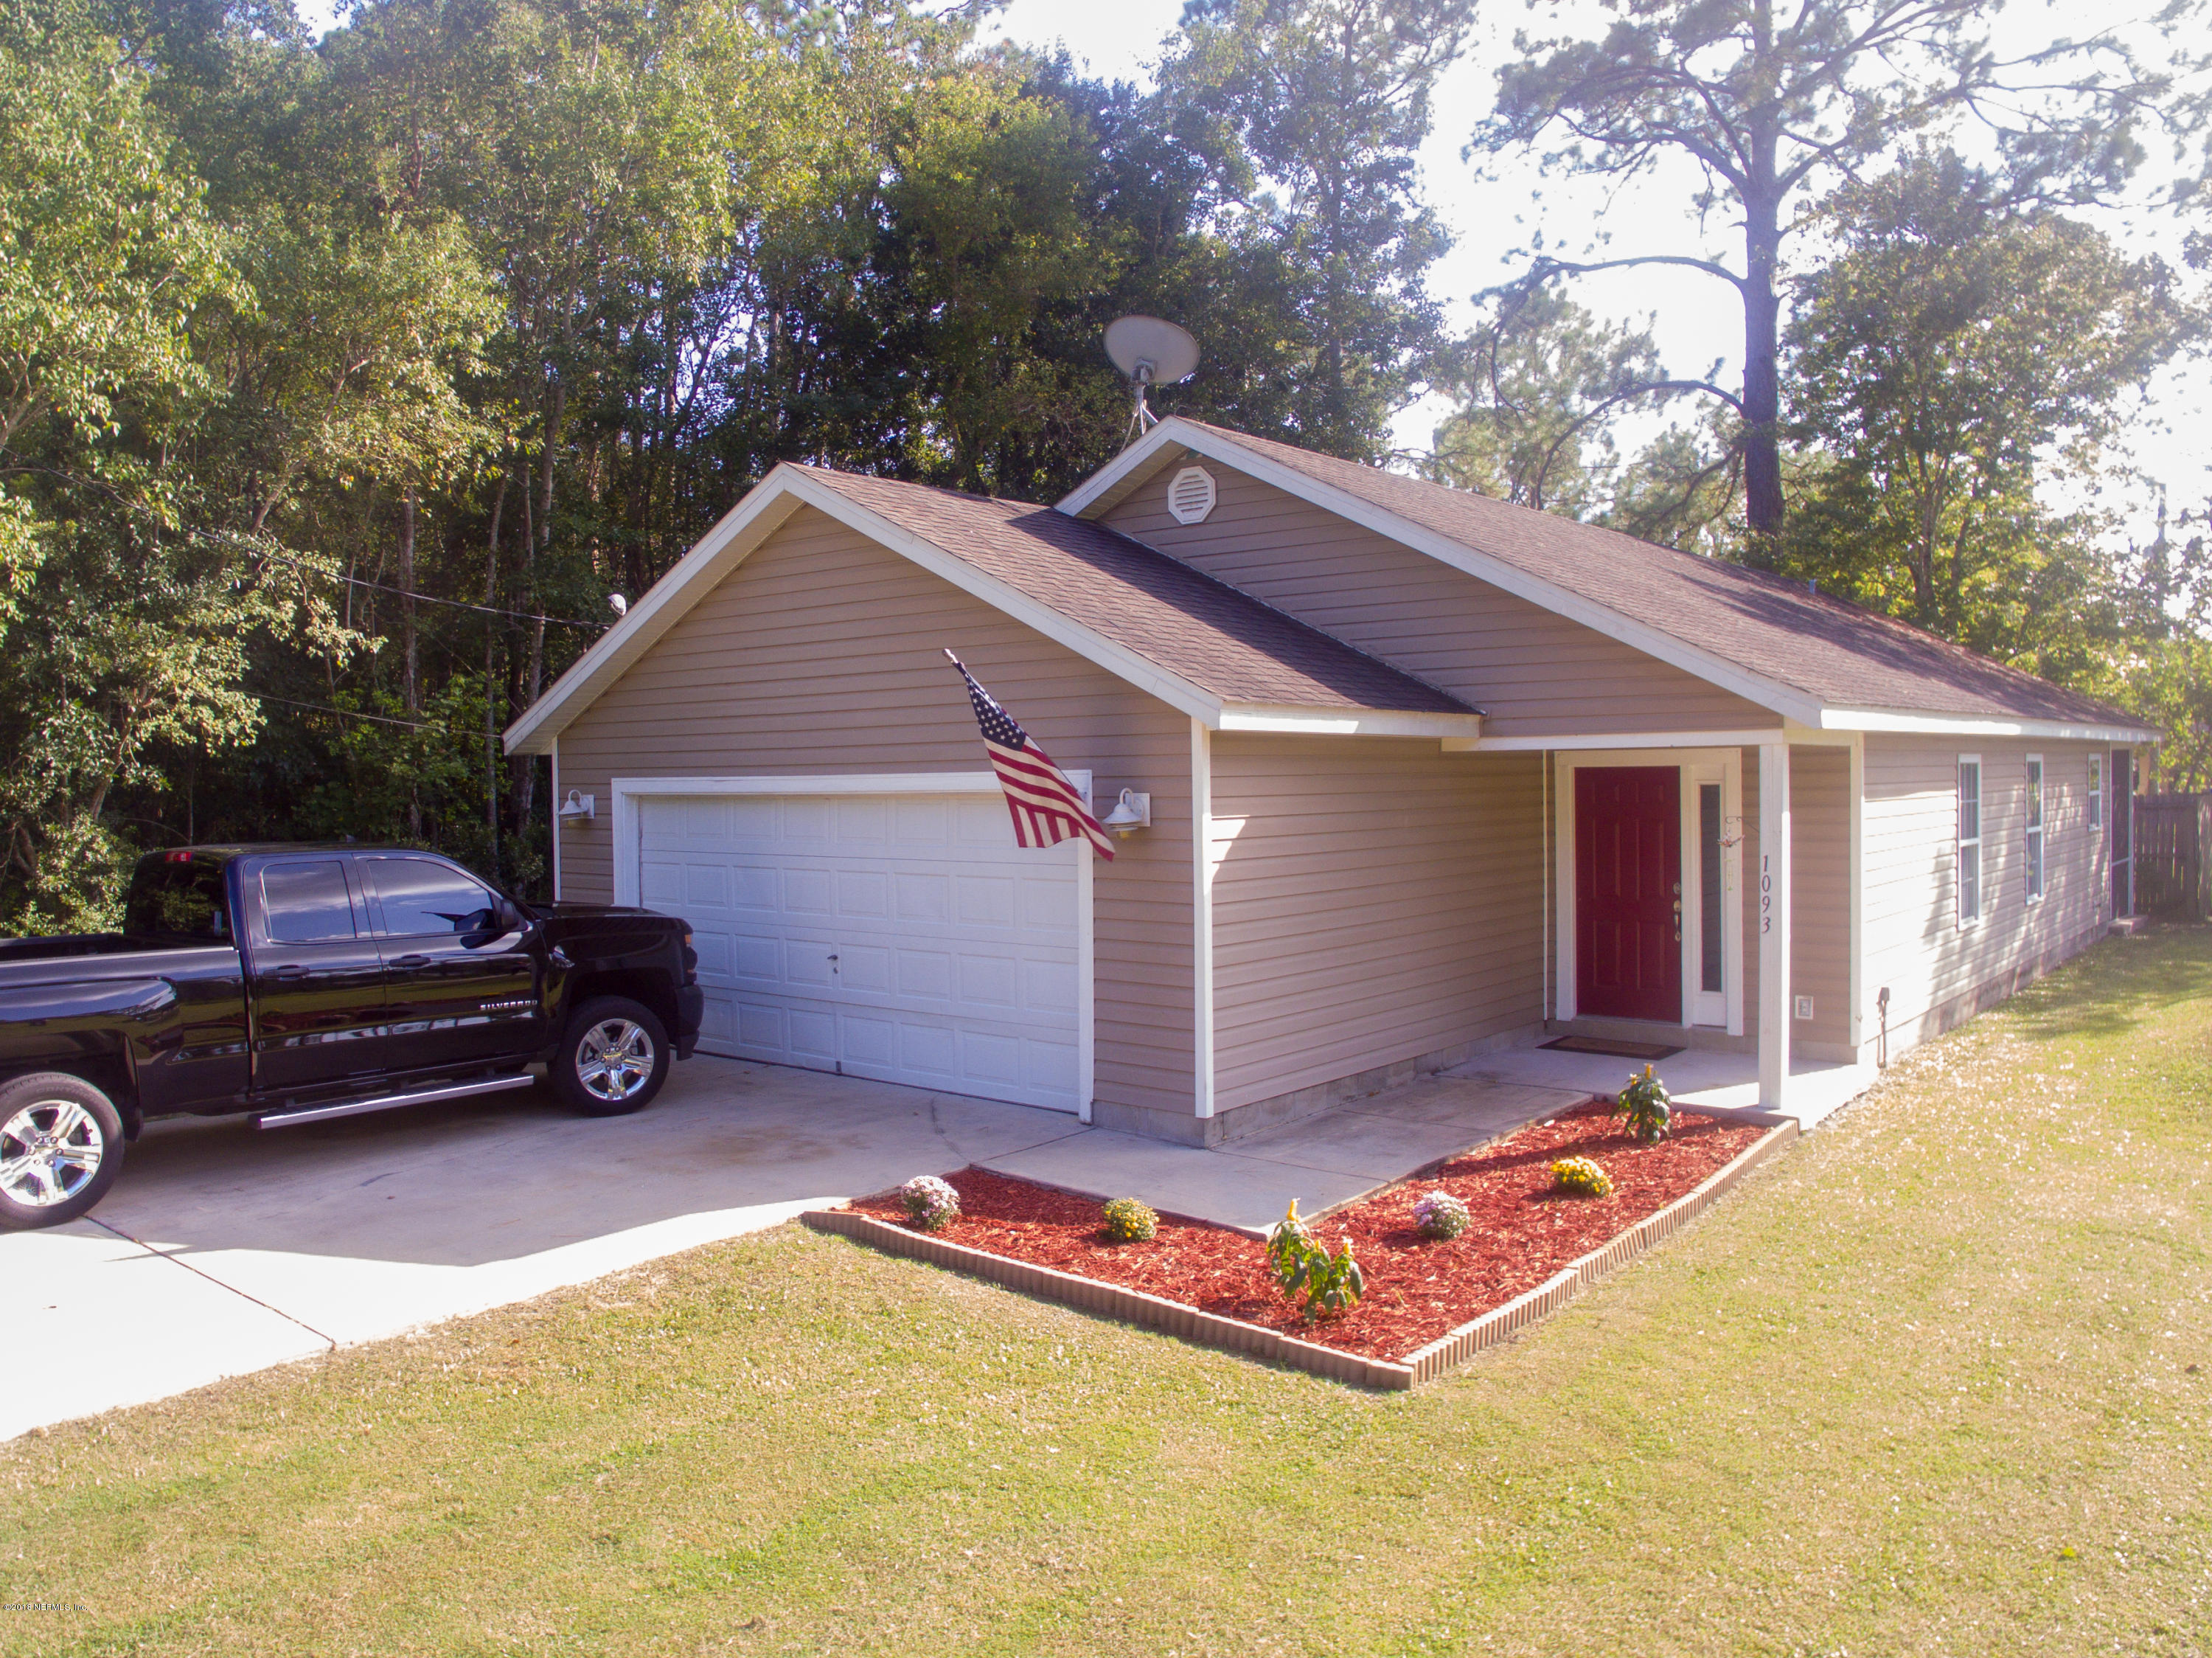 1093 FOUR MILE, ST AUGUSTINE, FLORIDA 32084, 3 Bedrooms Bedrooms, ,2 BathroomsBathrooms,Residential - single family,For sale,FOUR MILE,962259